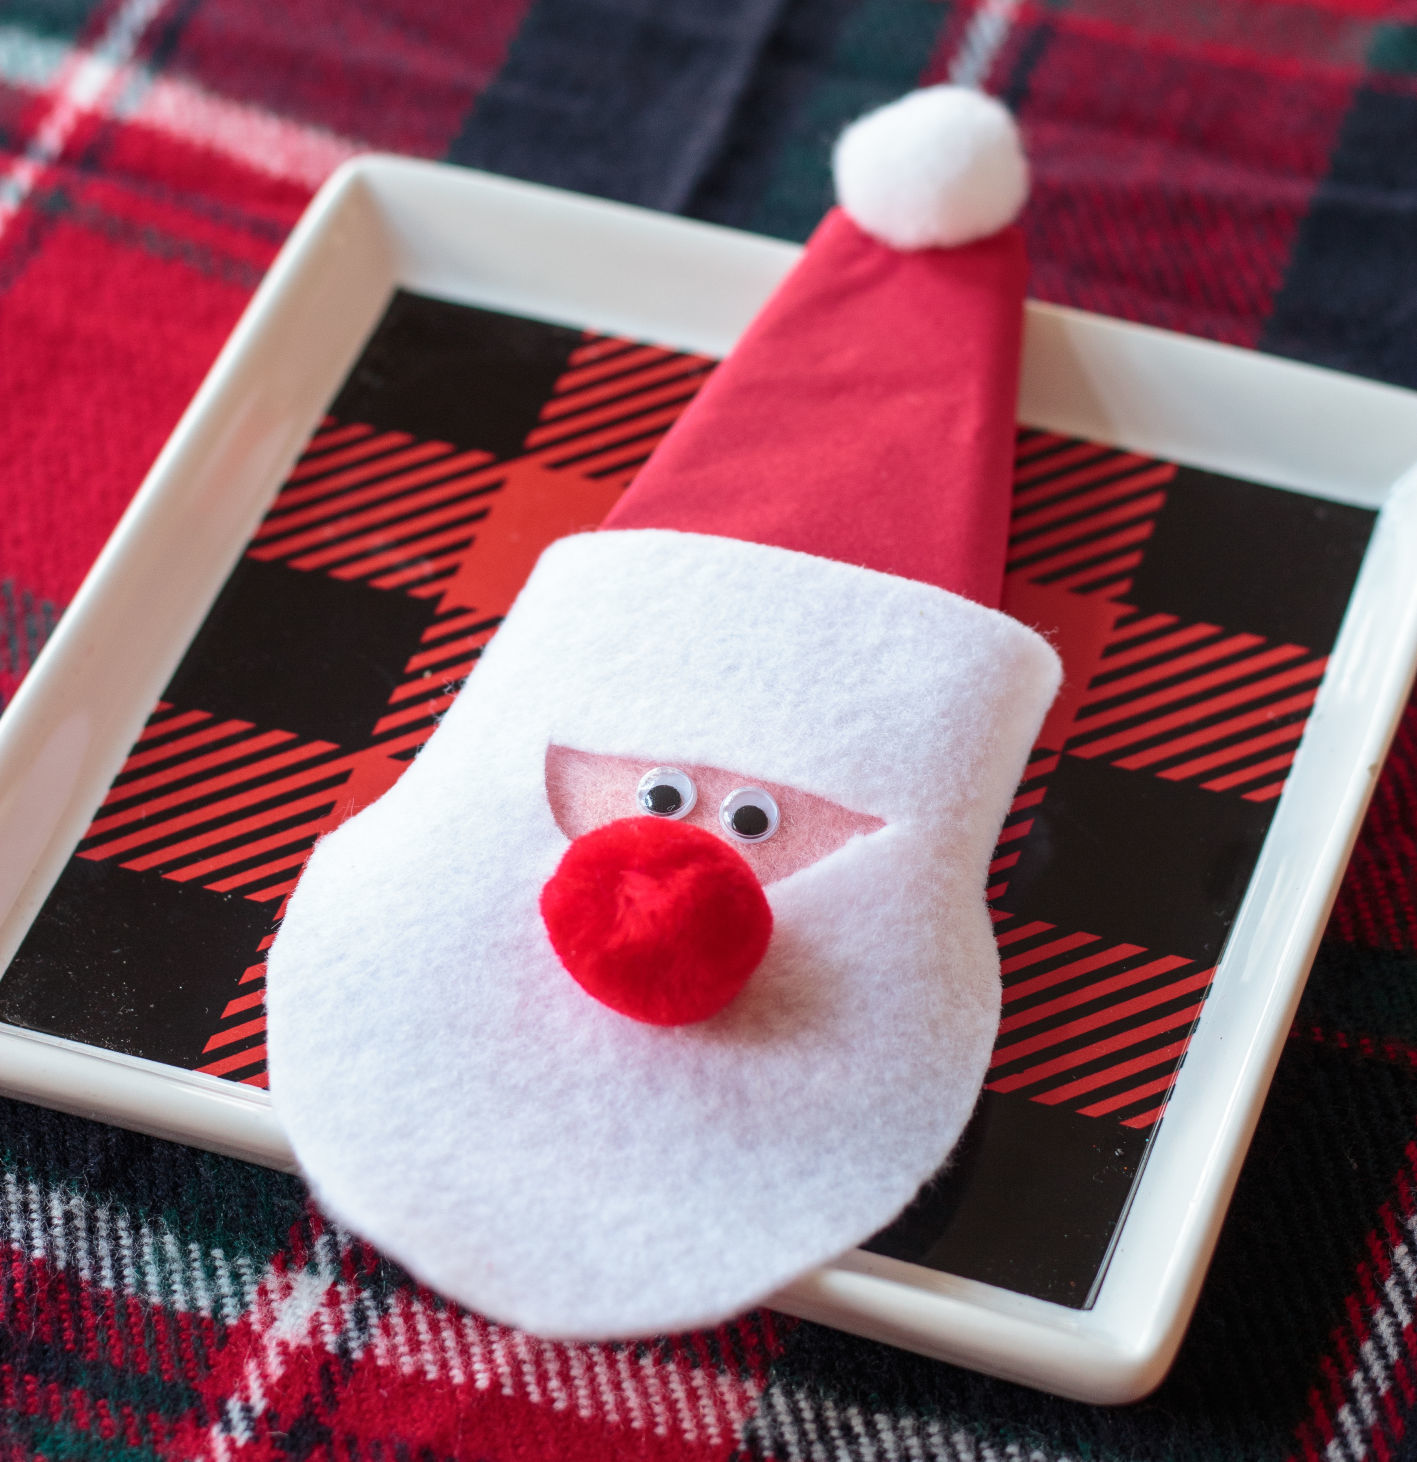 Christmas Craft Santa Napkin Rings Bring Ho Ho Holiday Cheer To The Table Lifestyles Greensboro Com